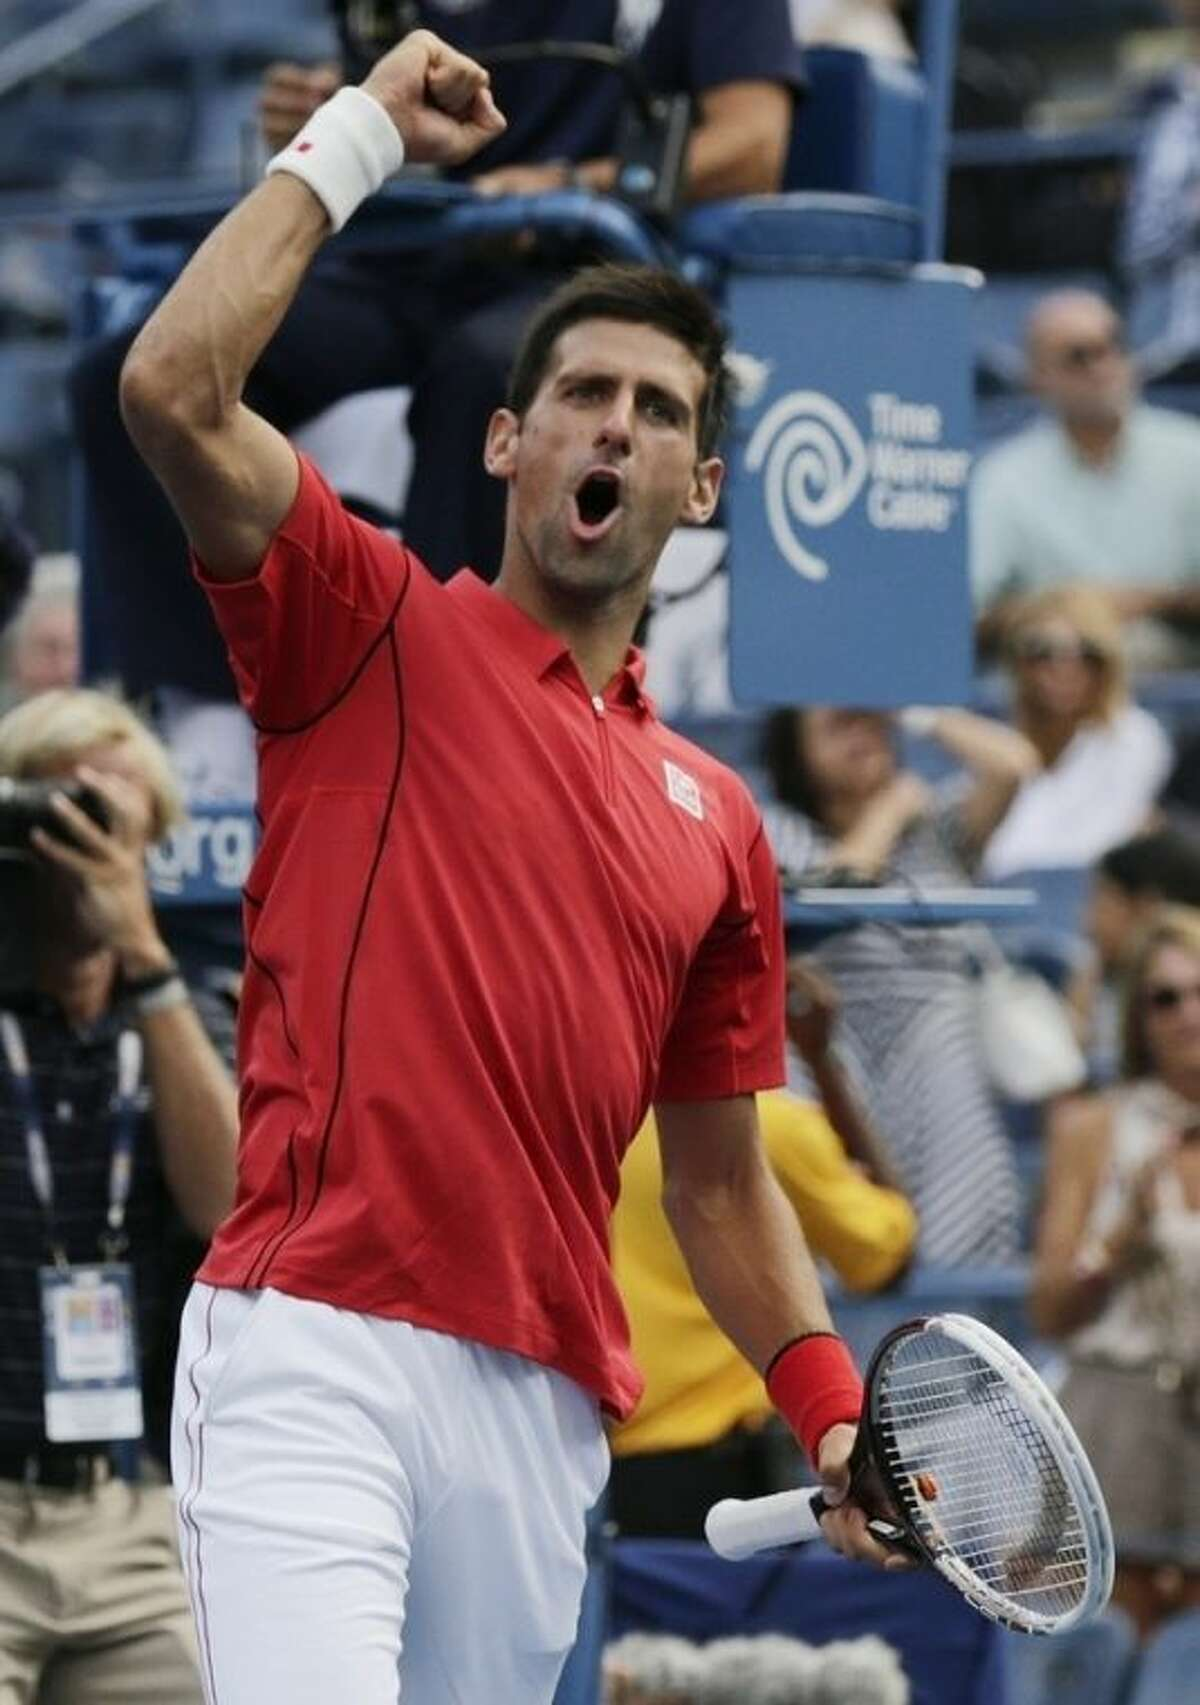 Novak Djokovic, of Serbia, after defeating Marcel Granollers, of Spain, in straight sets during the fourth round of the 2013 U.S. Open tennis tournament, Tuesday, Sept. 3, 2013, in New York. (AP Photo/Charles Krupa)